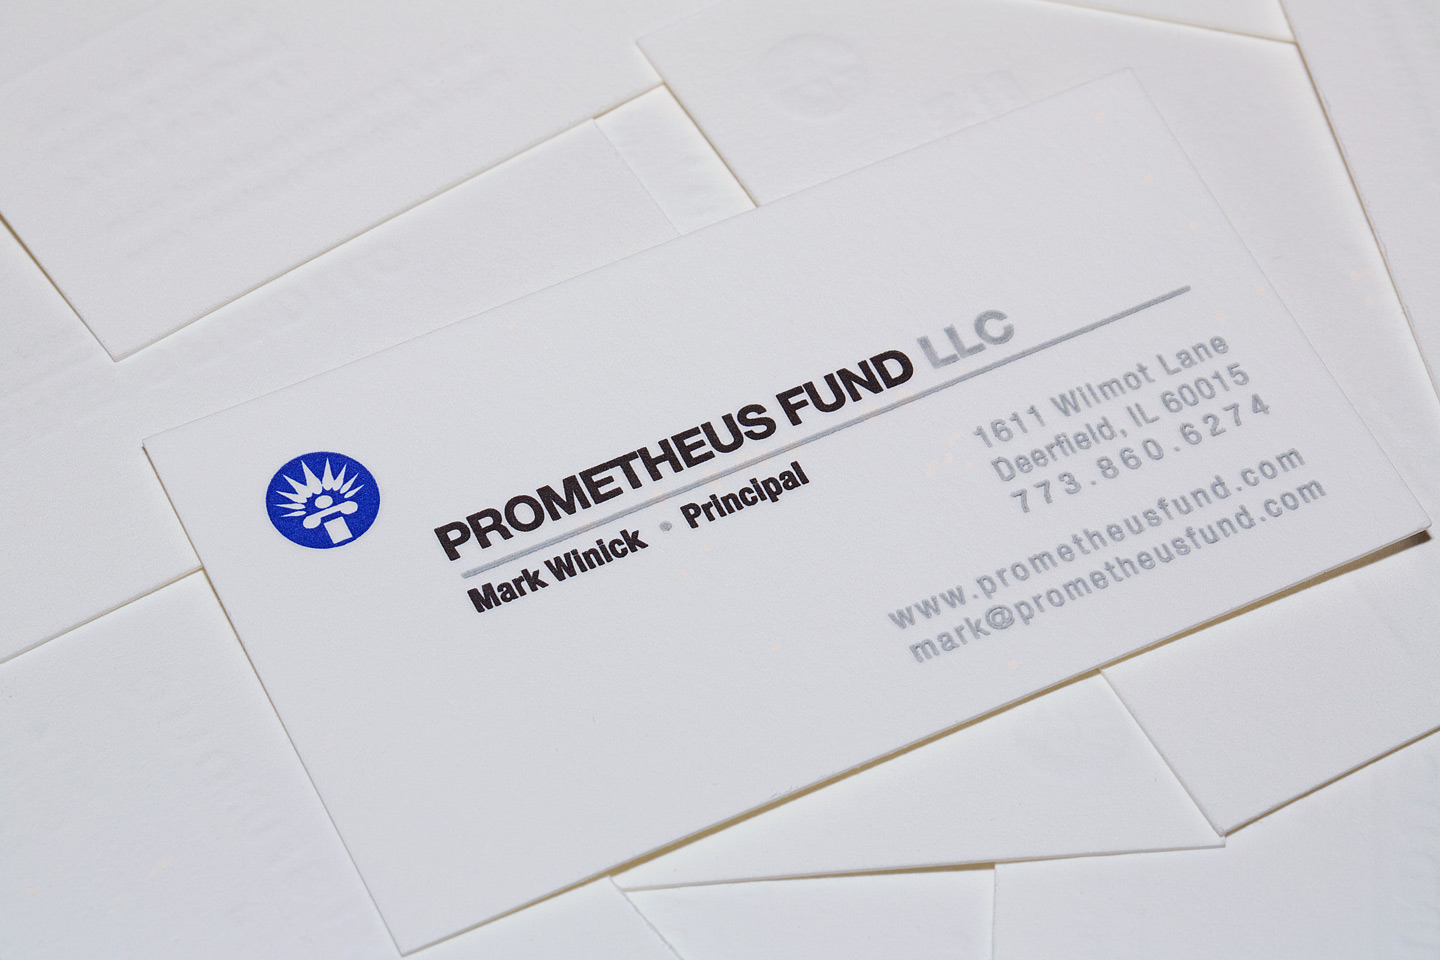 one prometheus fund llc letterpress business card sitting face-up on top of a pile of upside down business cards